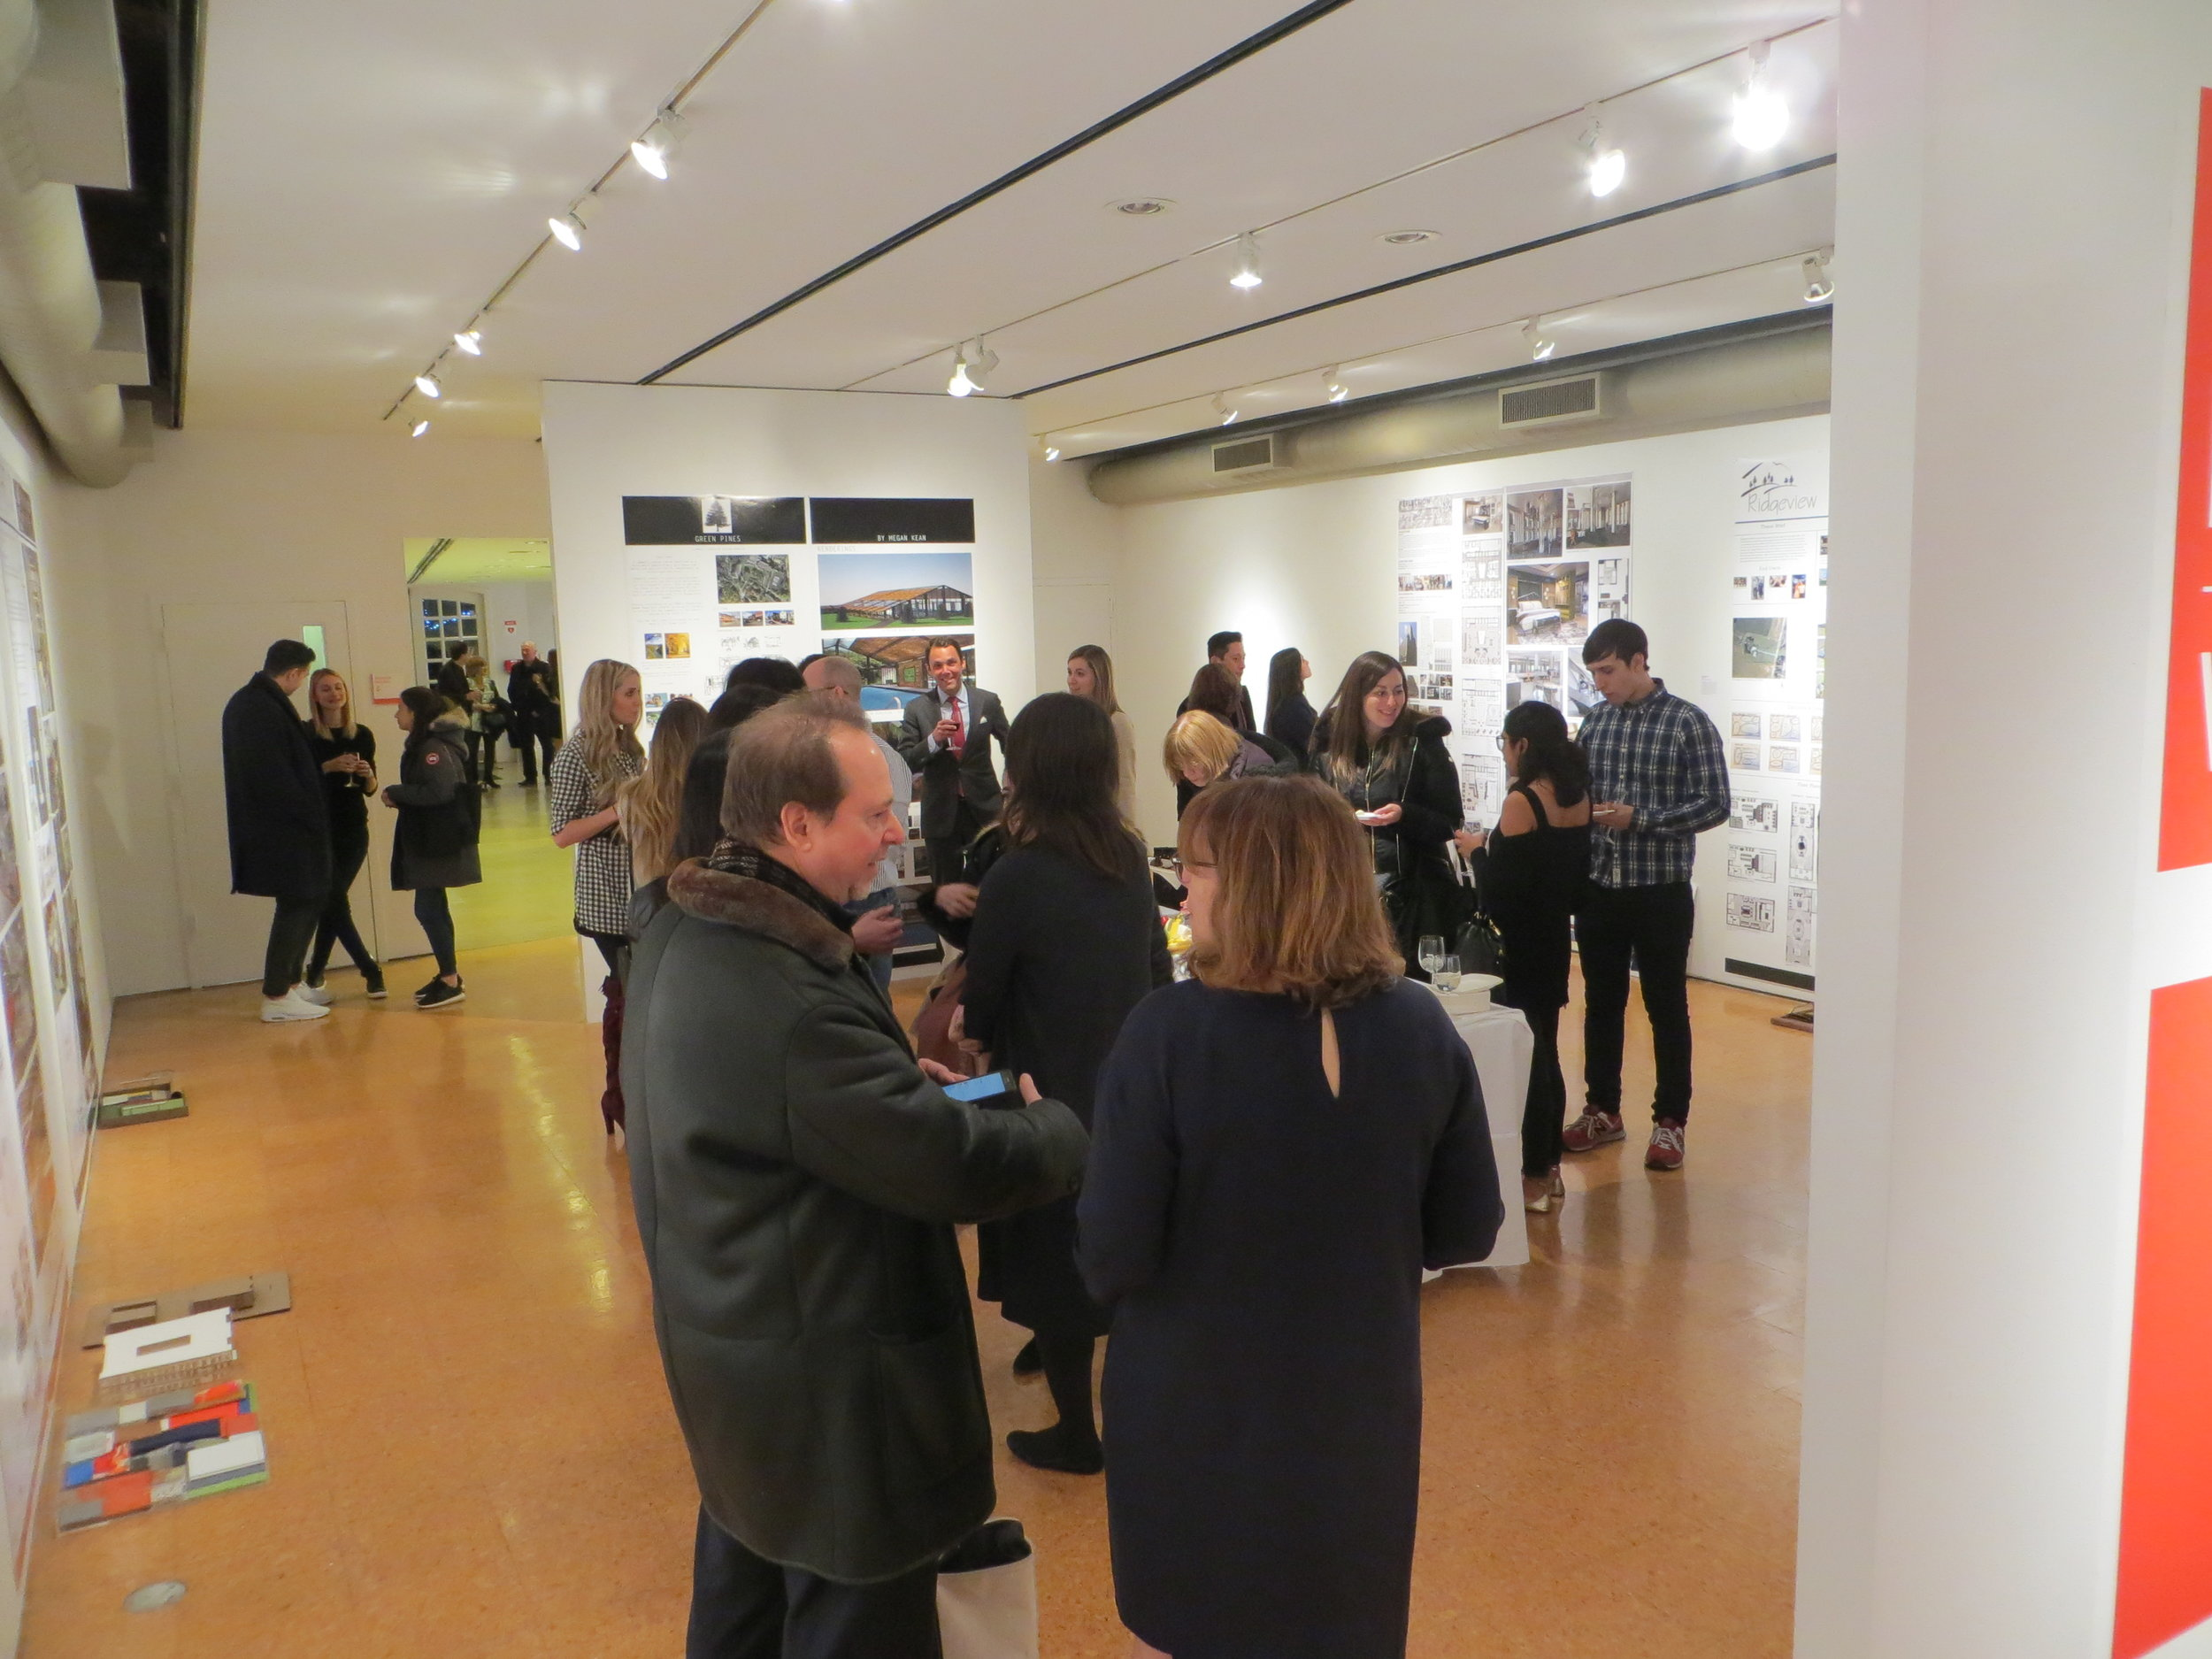 bfa-2017-winter-thesis-projects-exhibition_32753250055_o.jpg